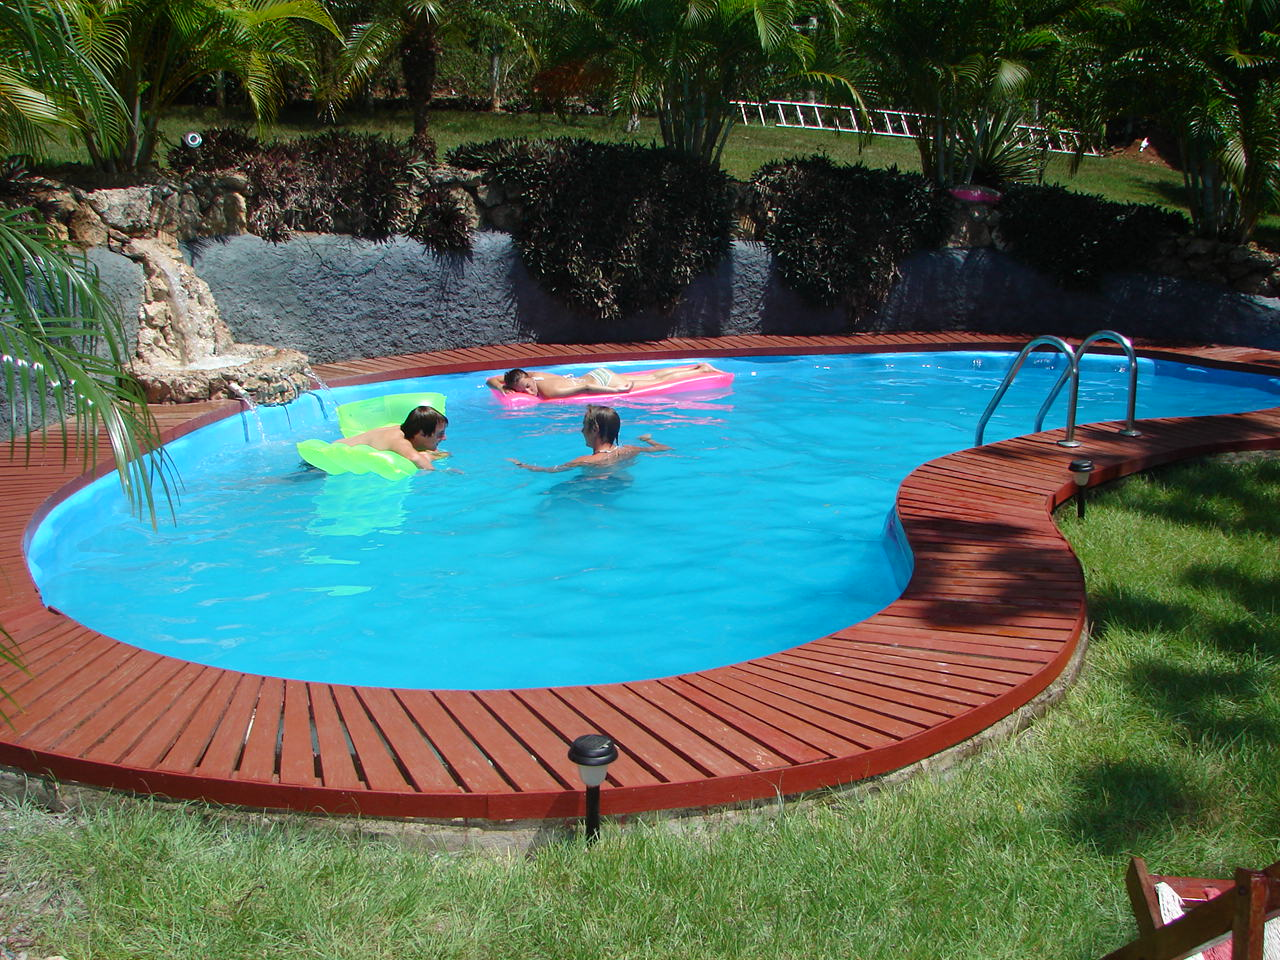 pool service hartford CT, swimming pool service hartford ct, pool service, pool cleaning hartford CT, swimming pool cleaning hartford ct, pool cleaning, ...